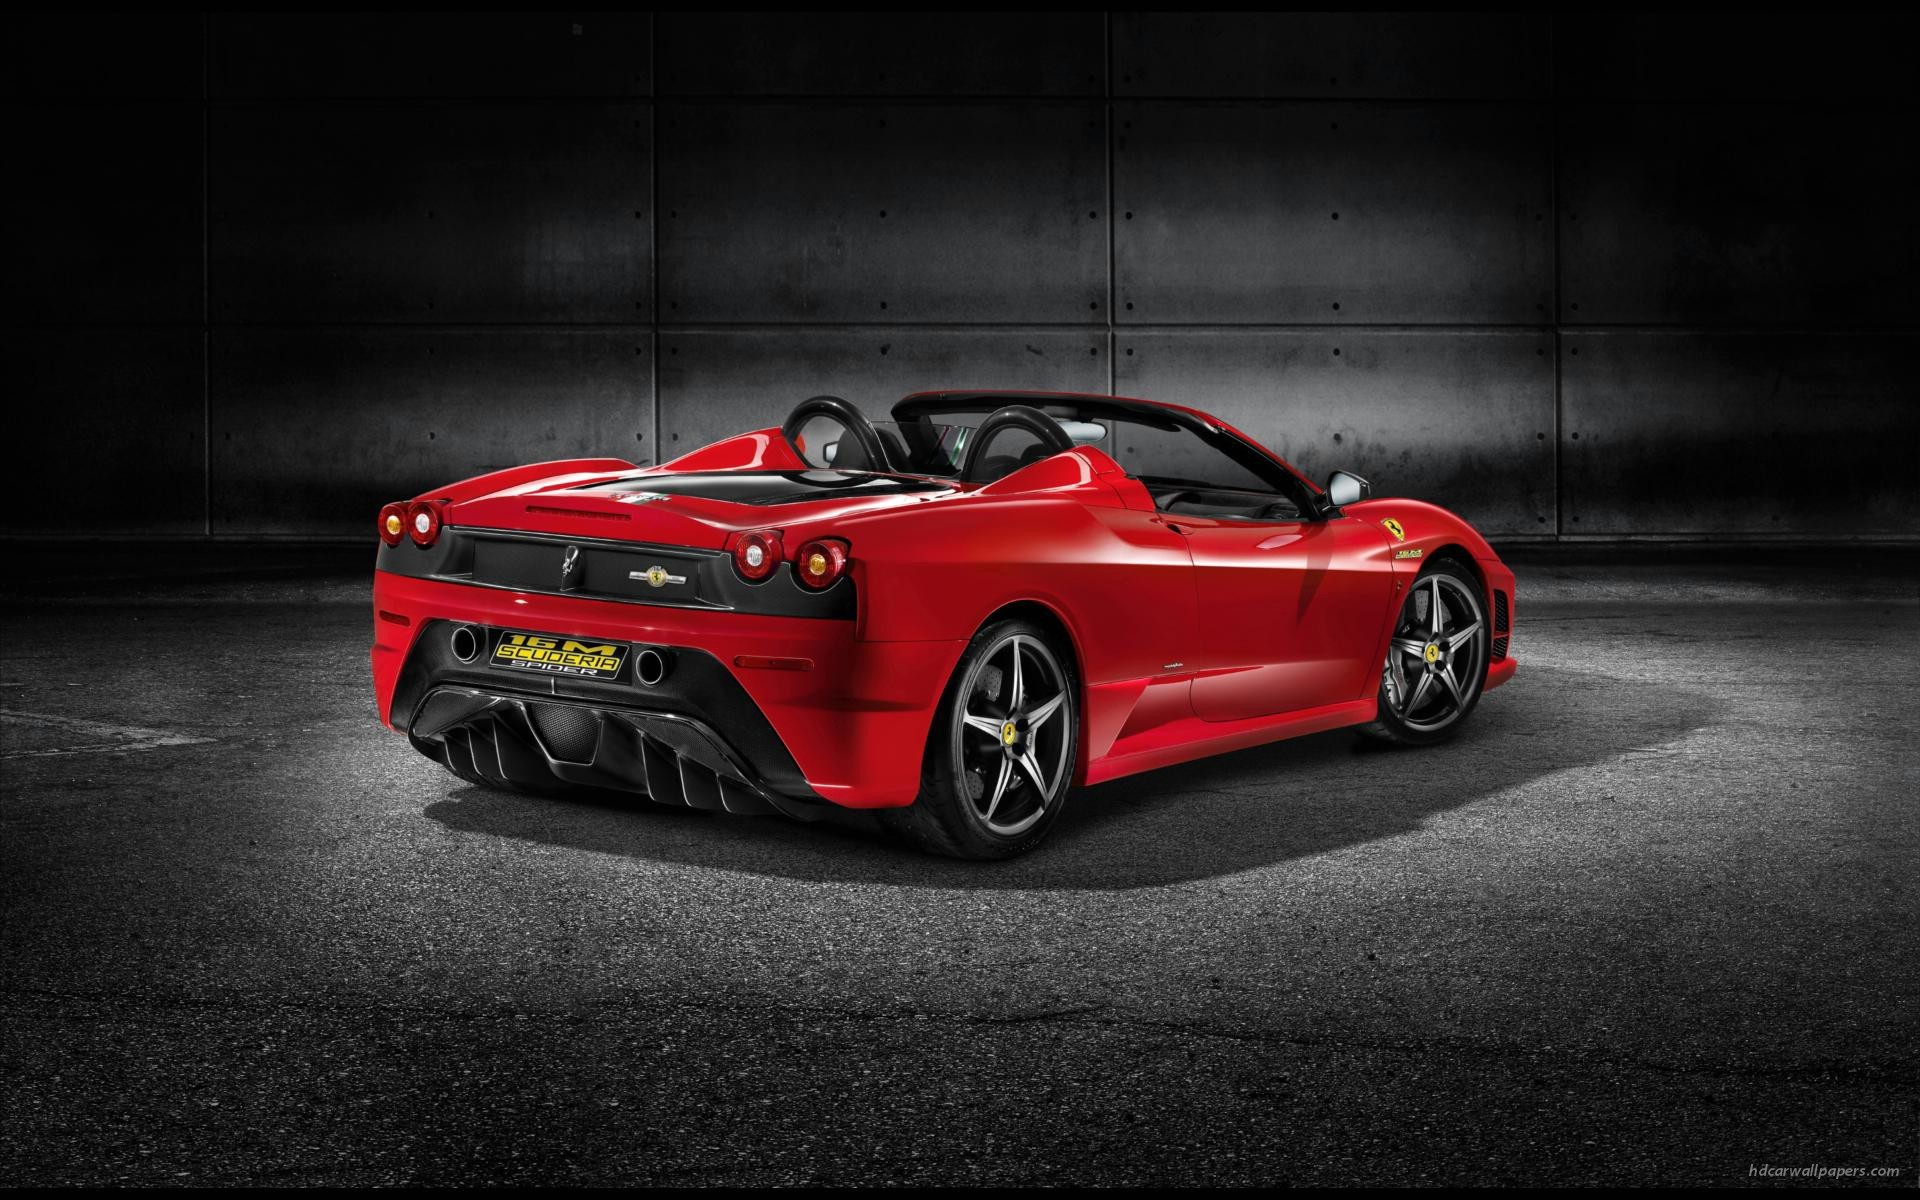 Res: 1920x1200, Ferrari Scuderia Spyder Car Poster Print on 10 mil Archival Satin Paper Red  Rear Side View